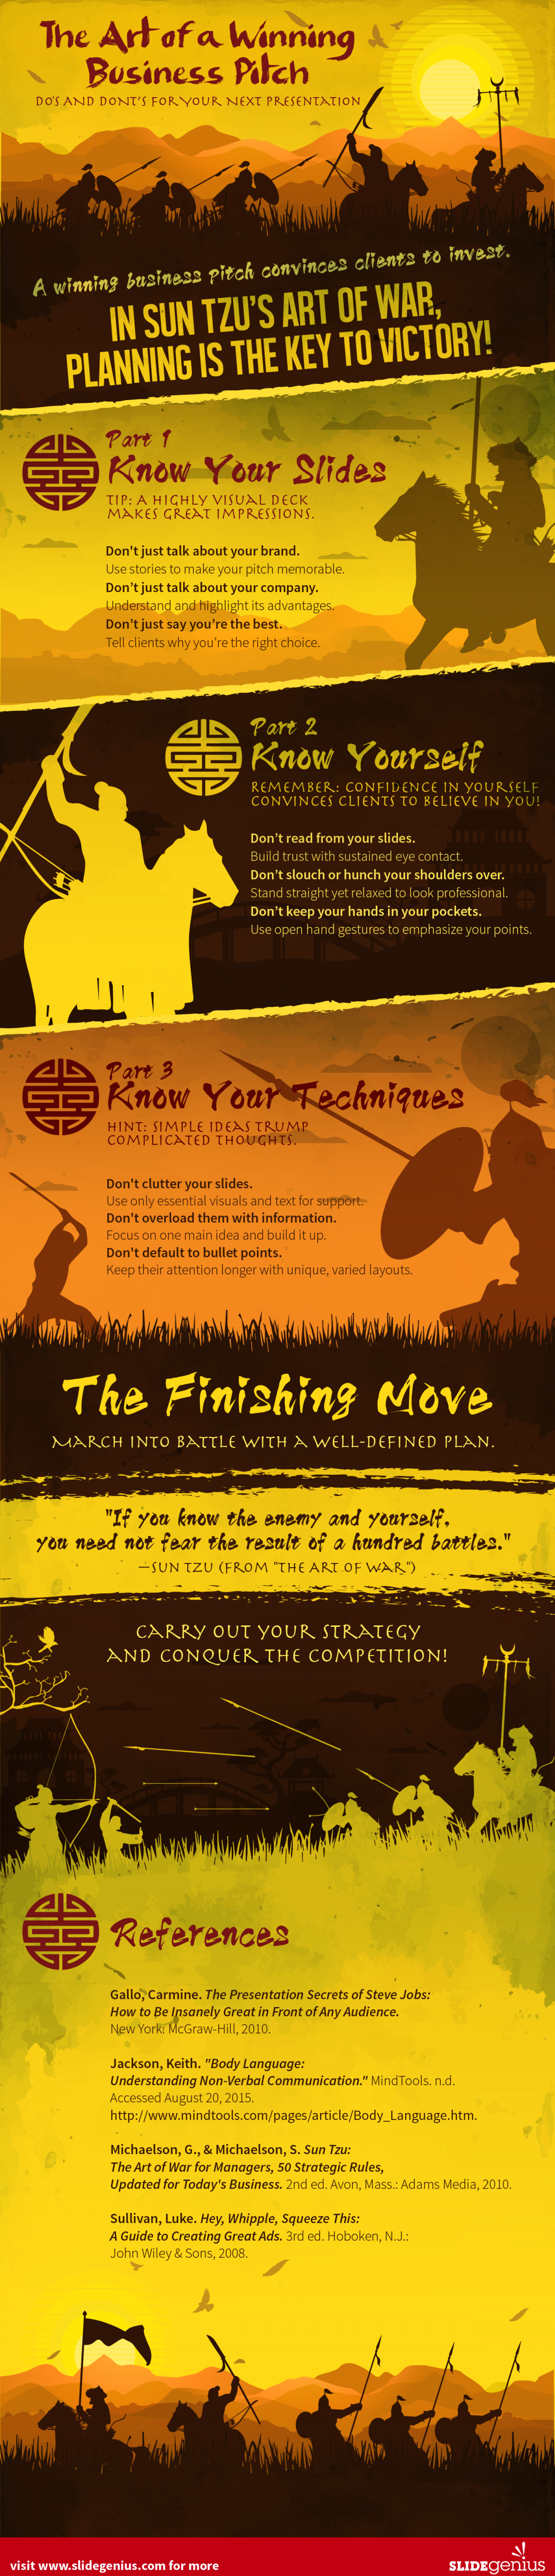 The Art of a Winning Business Pitch: Do's and Dont's for Your Next Presentation Infographic